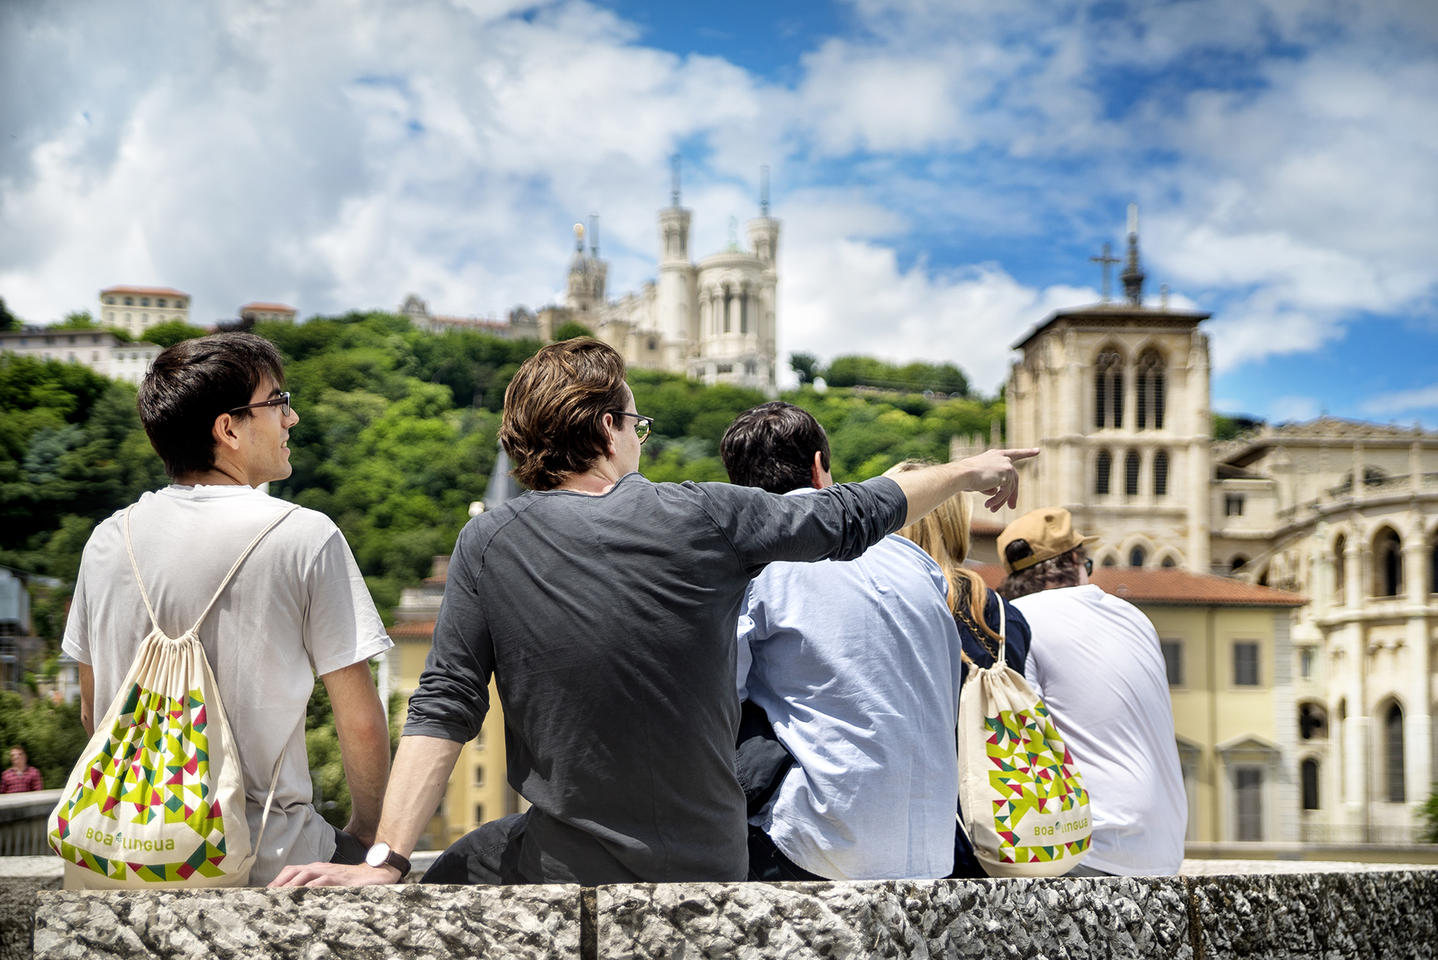 students sitting and looking at the horizon over a city